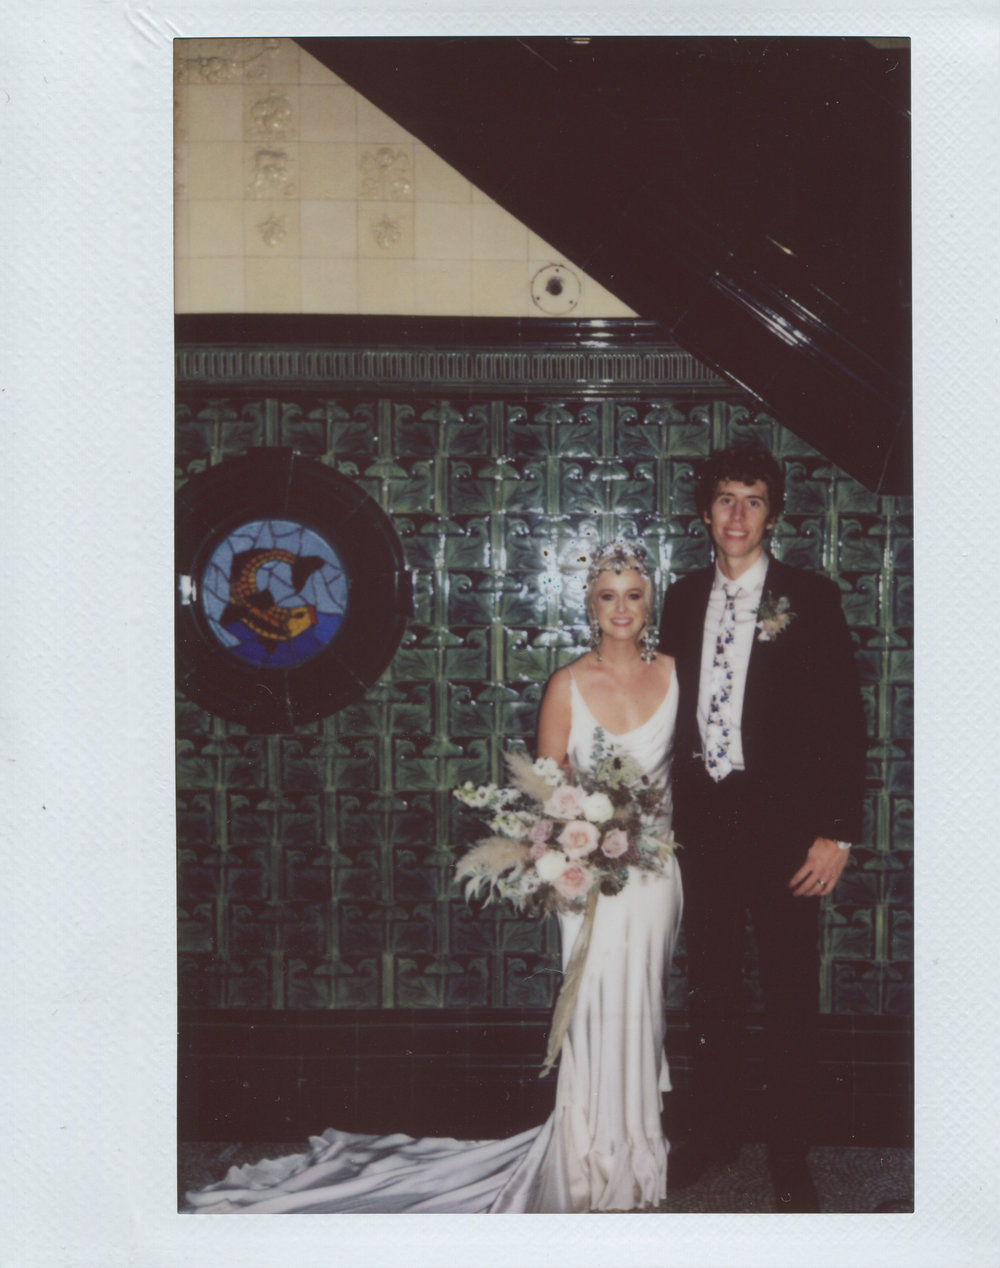 Instant film wedding photographer